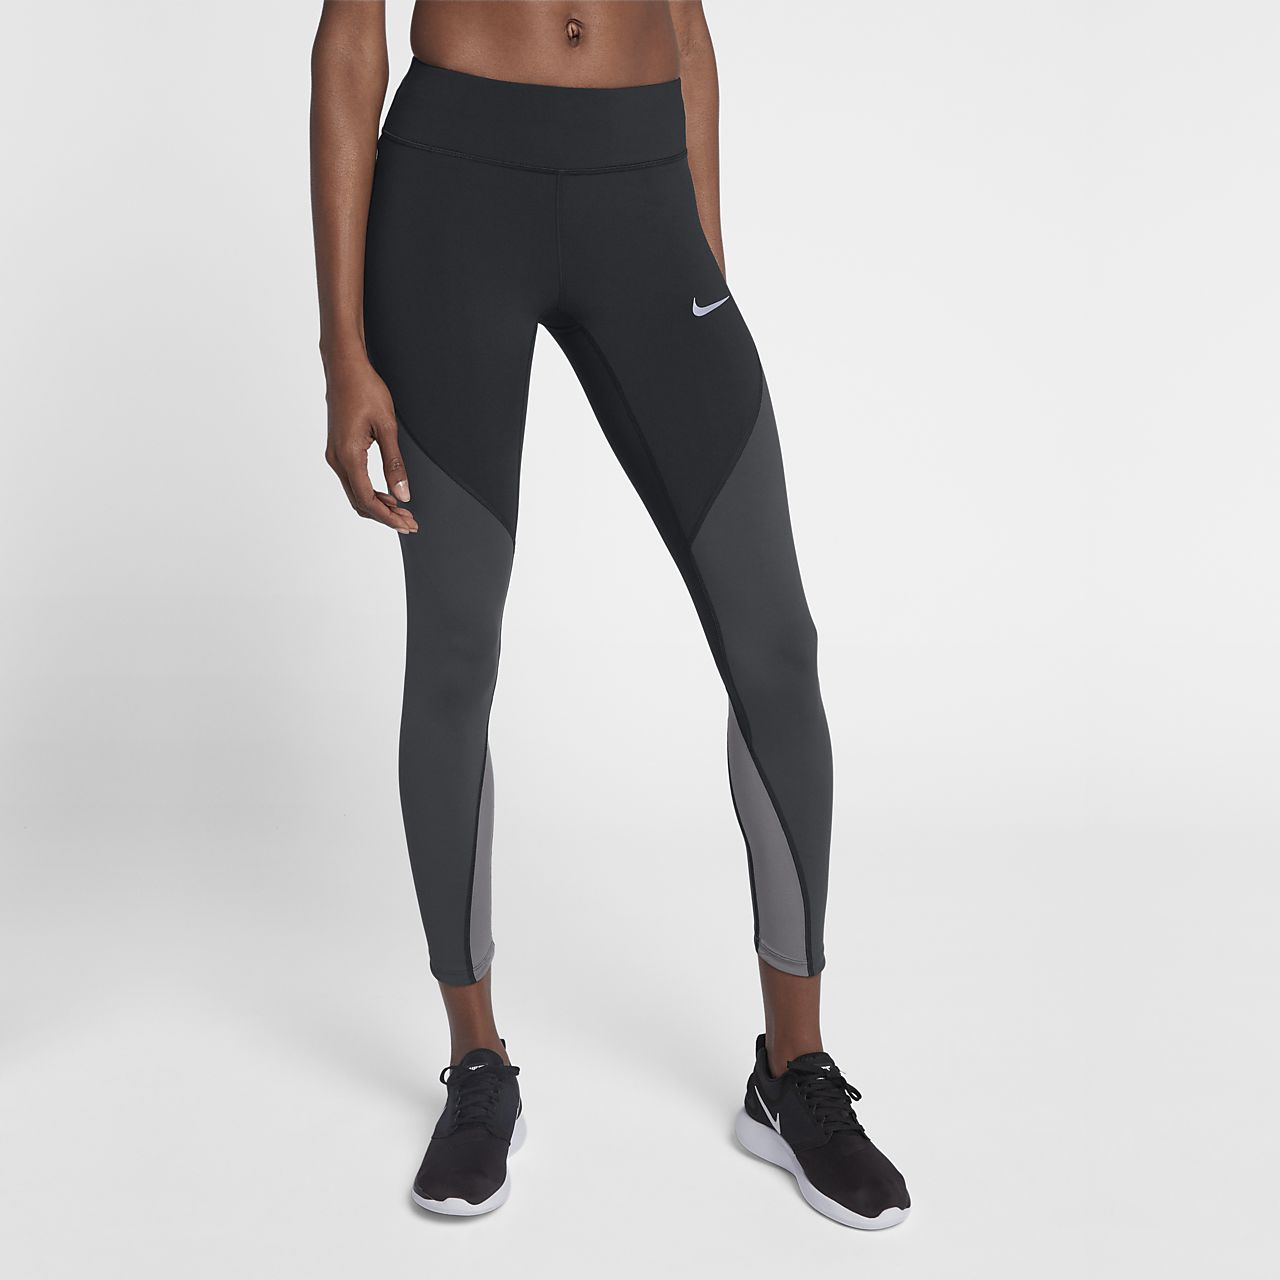 ... Nike Epic Lux Women's Running Tights